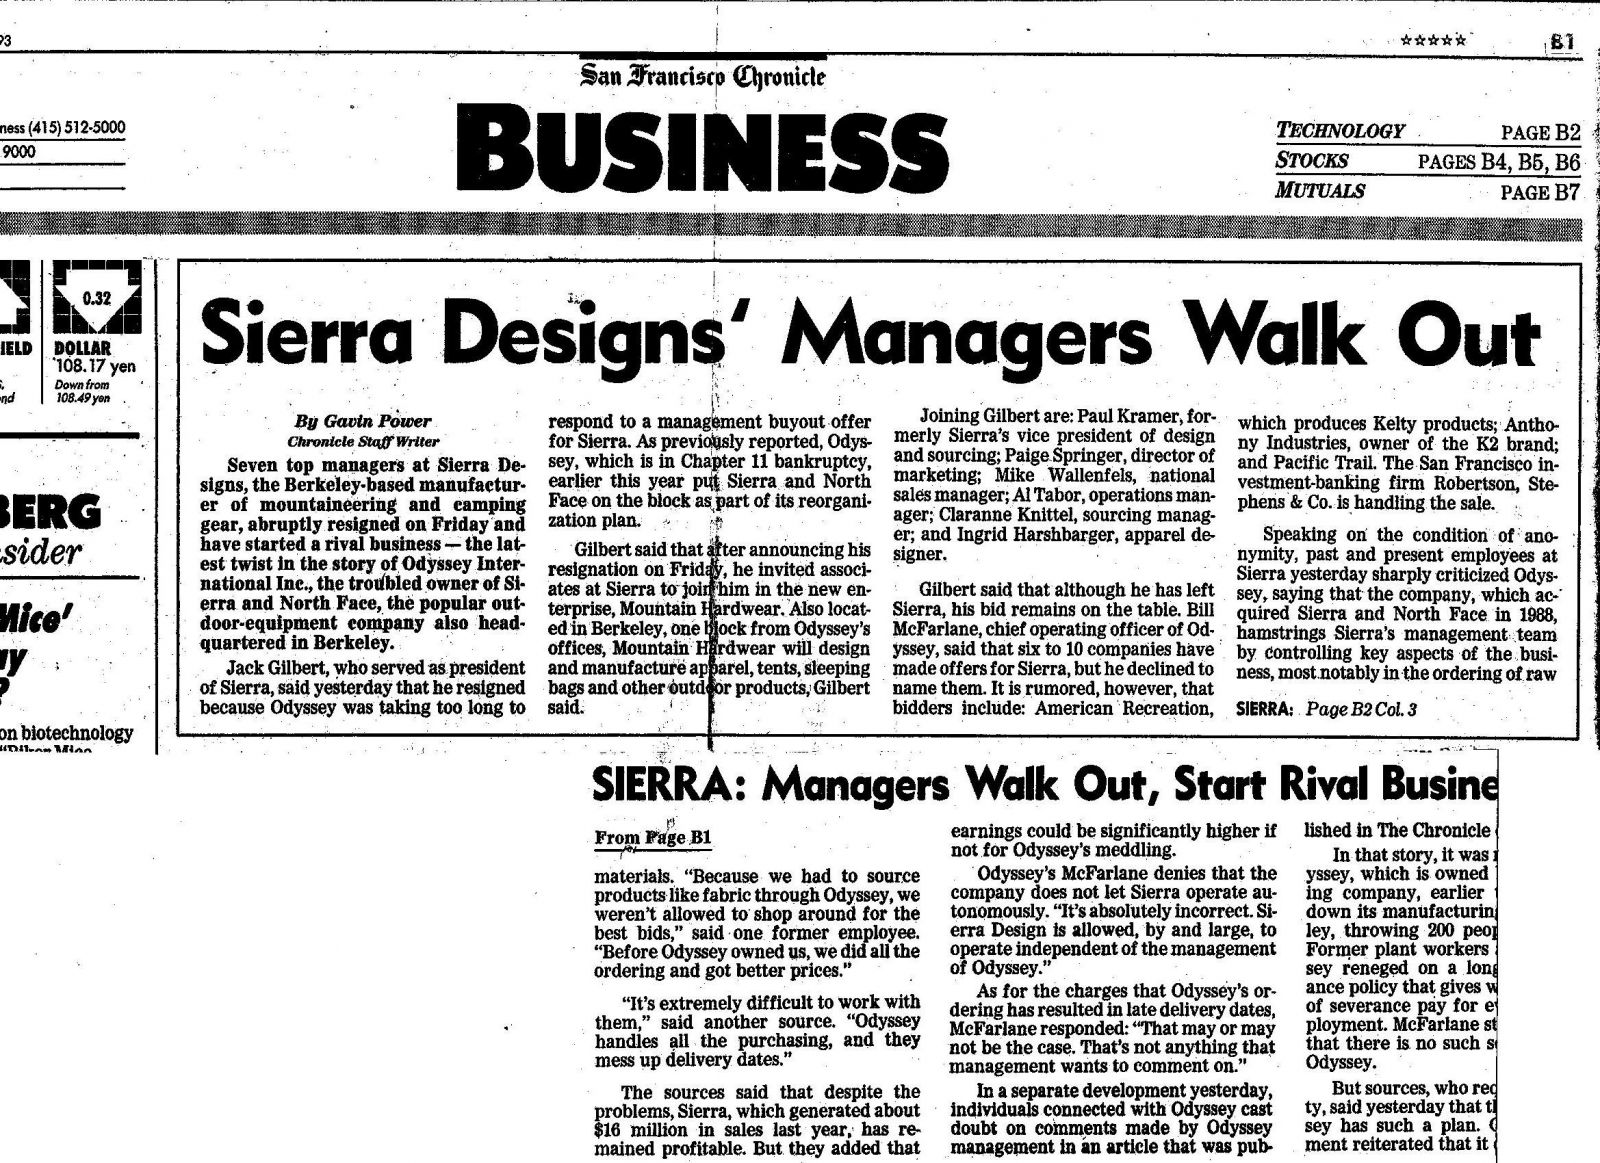 SF Chronicle 11/2/1993 - Sierra Designs Managers Walk Out